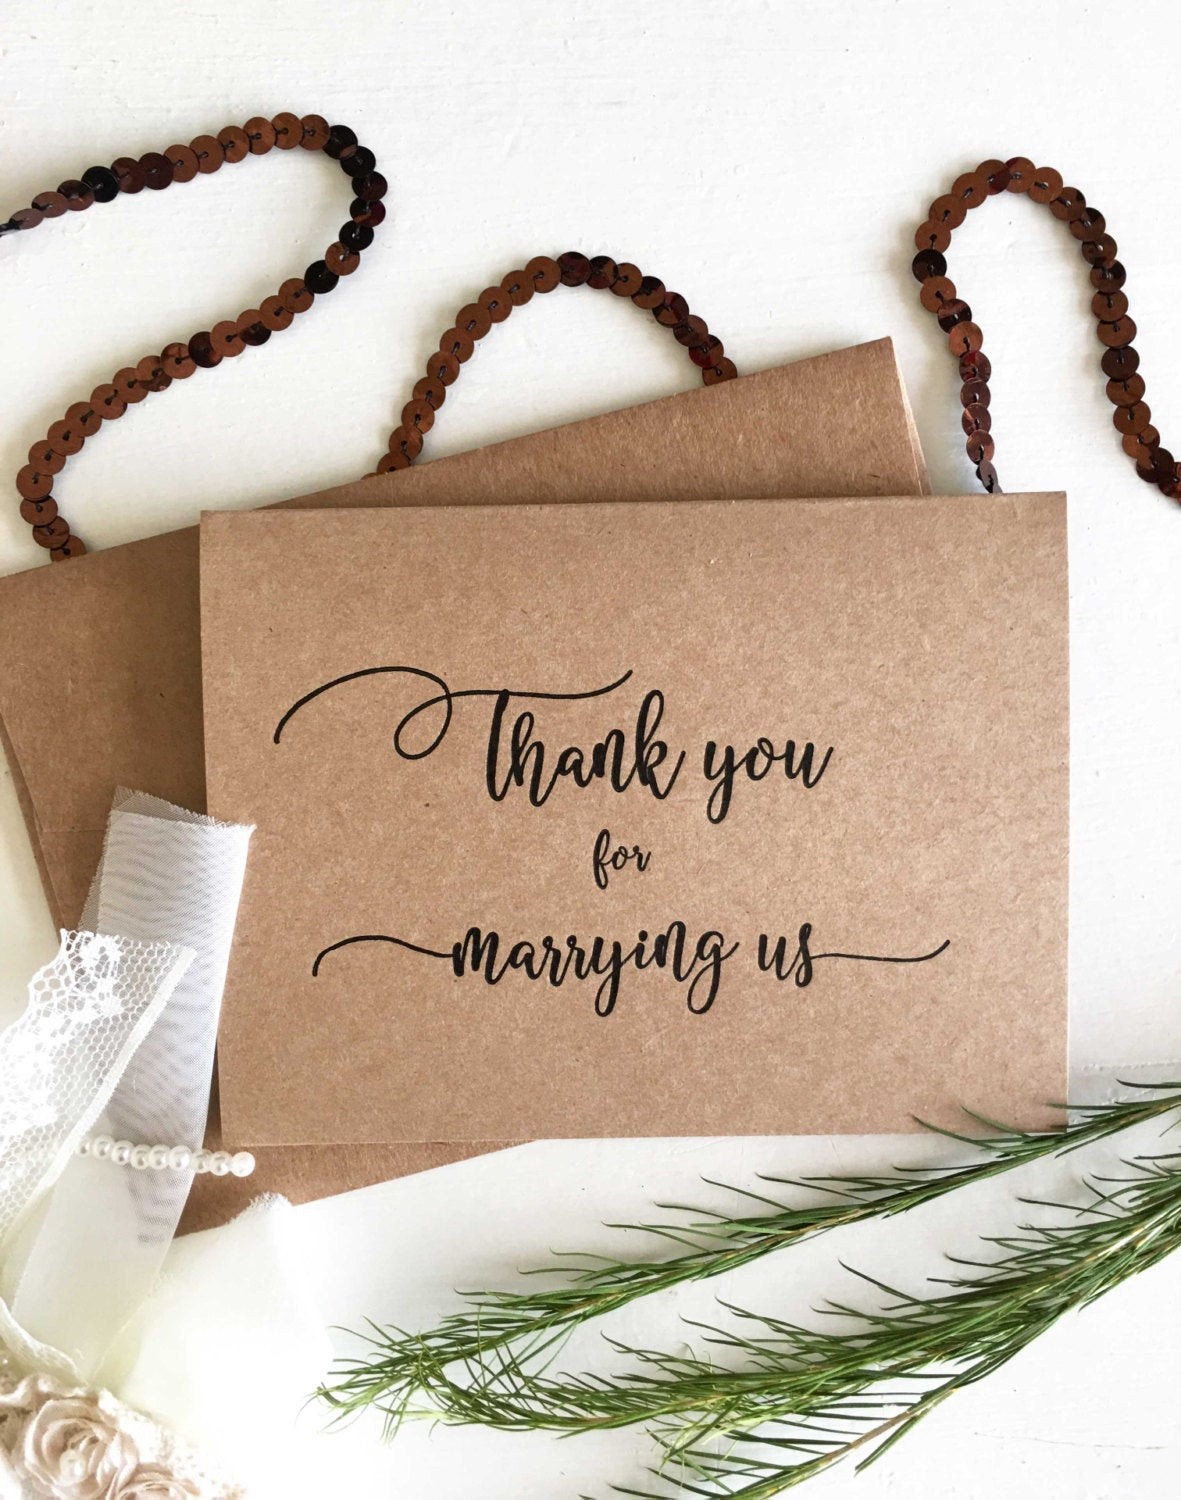 Best ideas about Wedding Officiant Gift Ideas . Save or Pin Wedding ficiant Gift ficiant Card Thank You For Now.